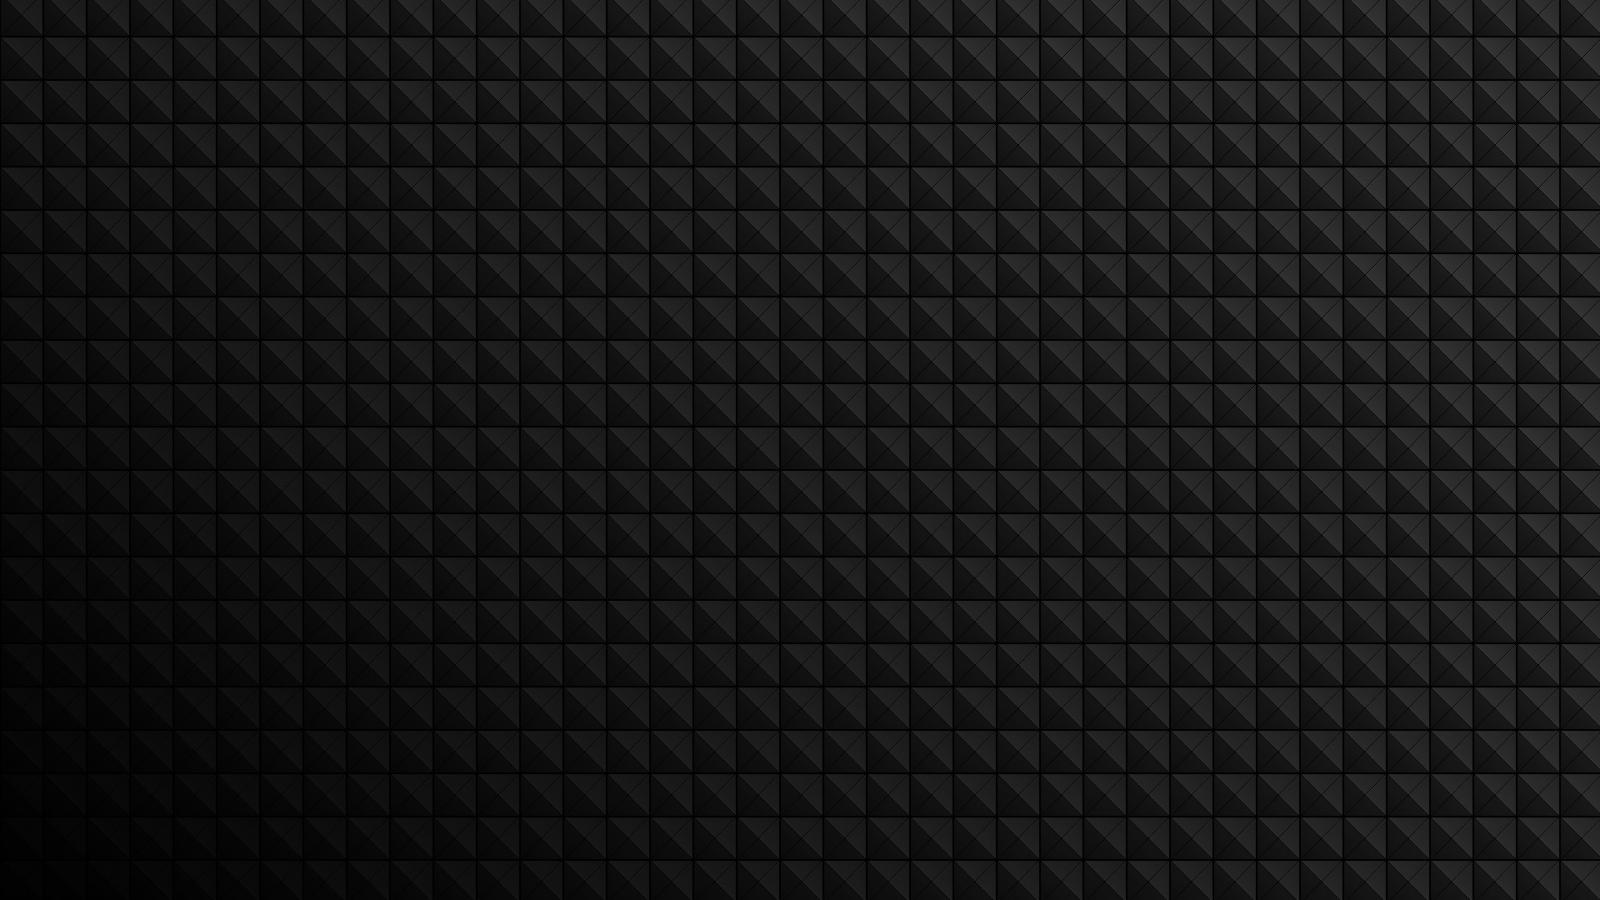 basic grey desktop wallpaper wallpapersafari